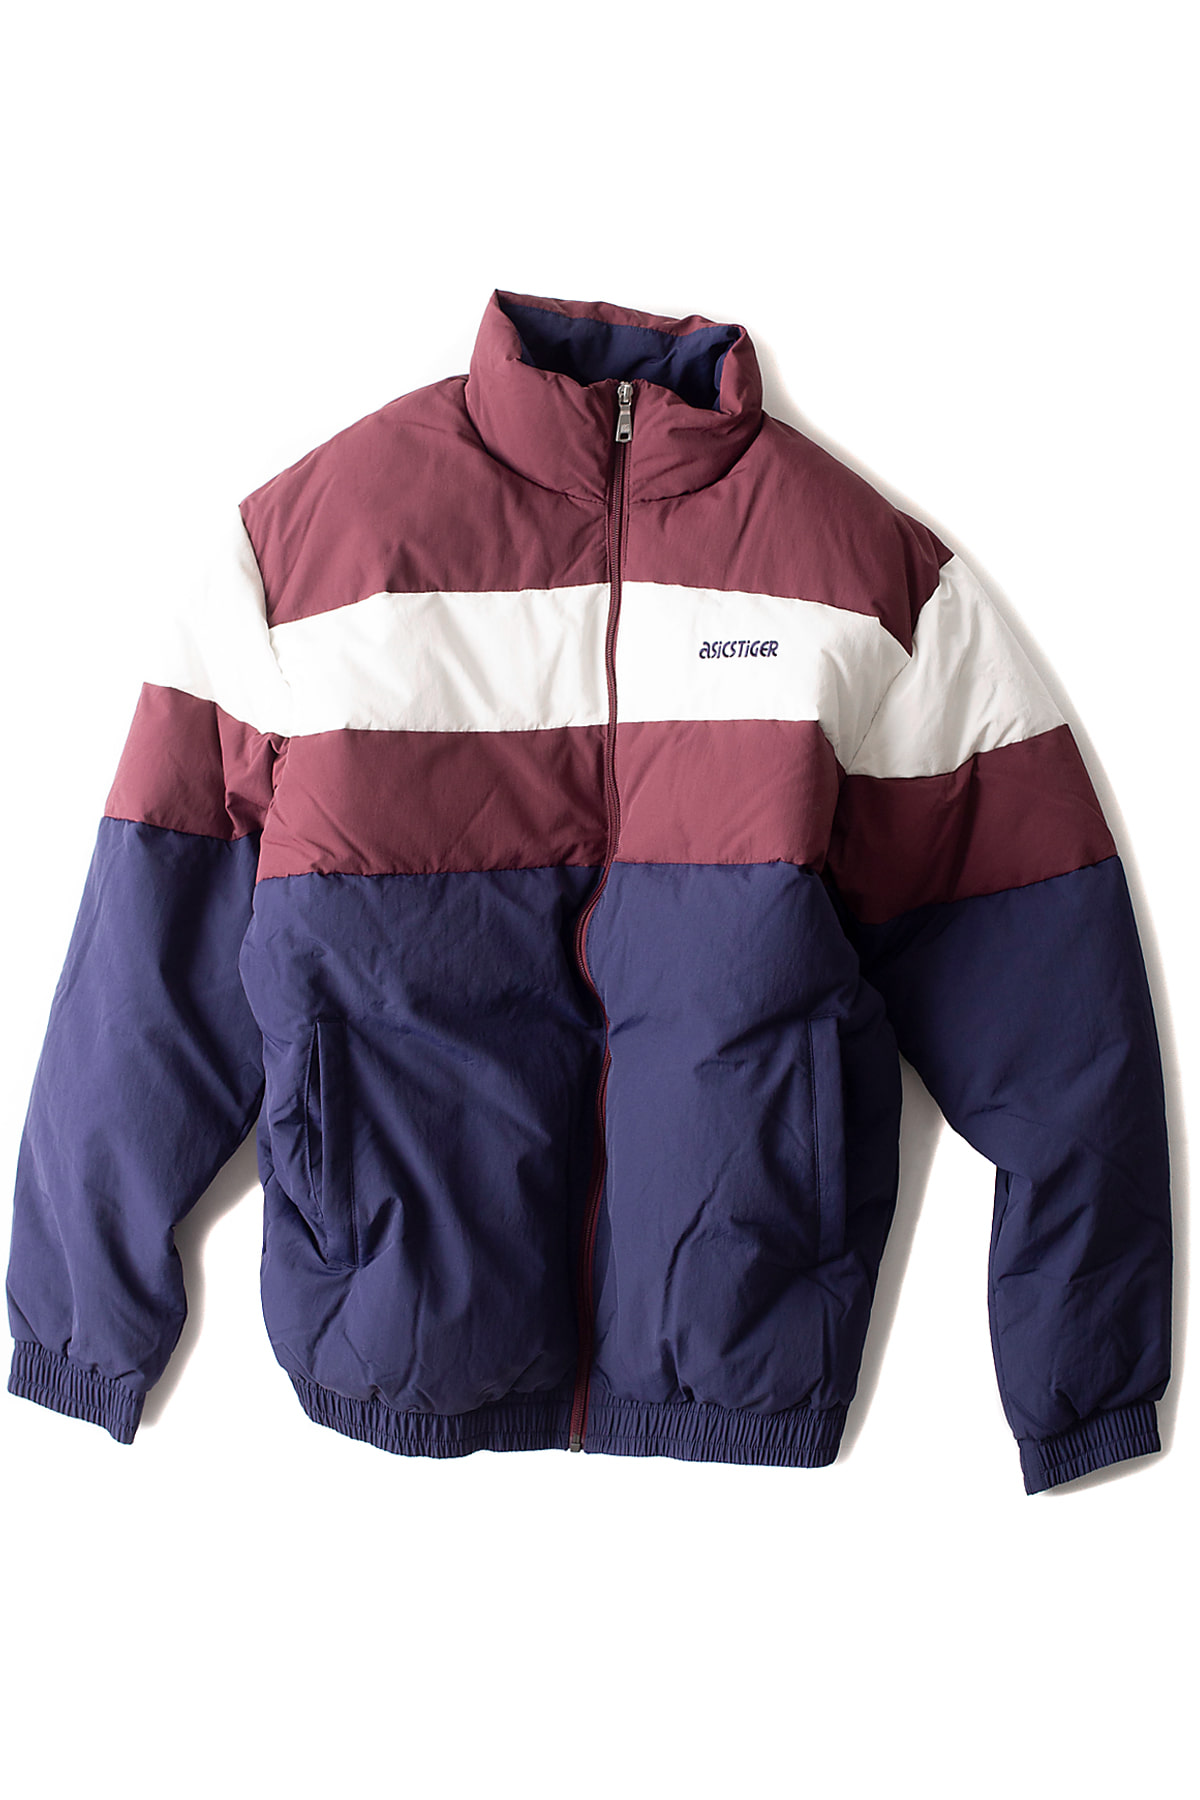 asics tiger : CB Down Jacket (Burgundy)